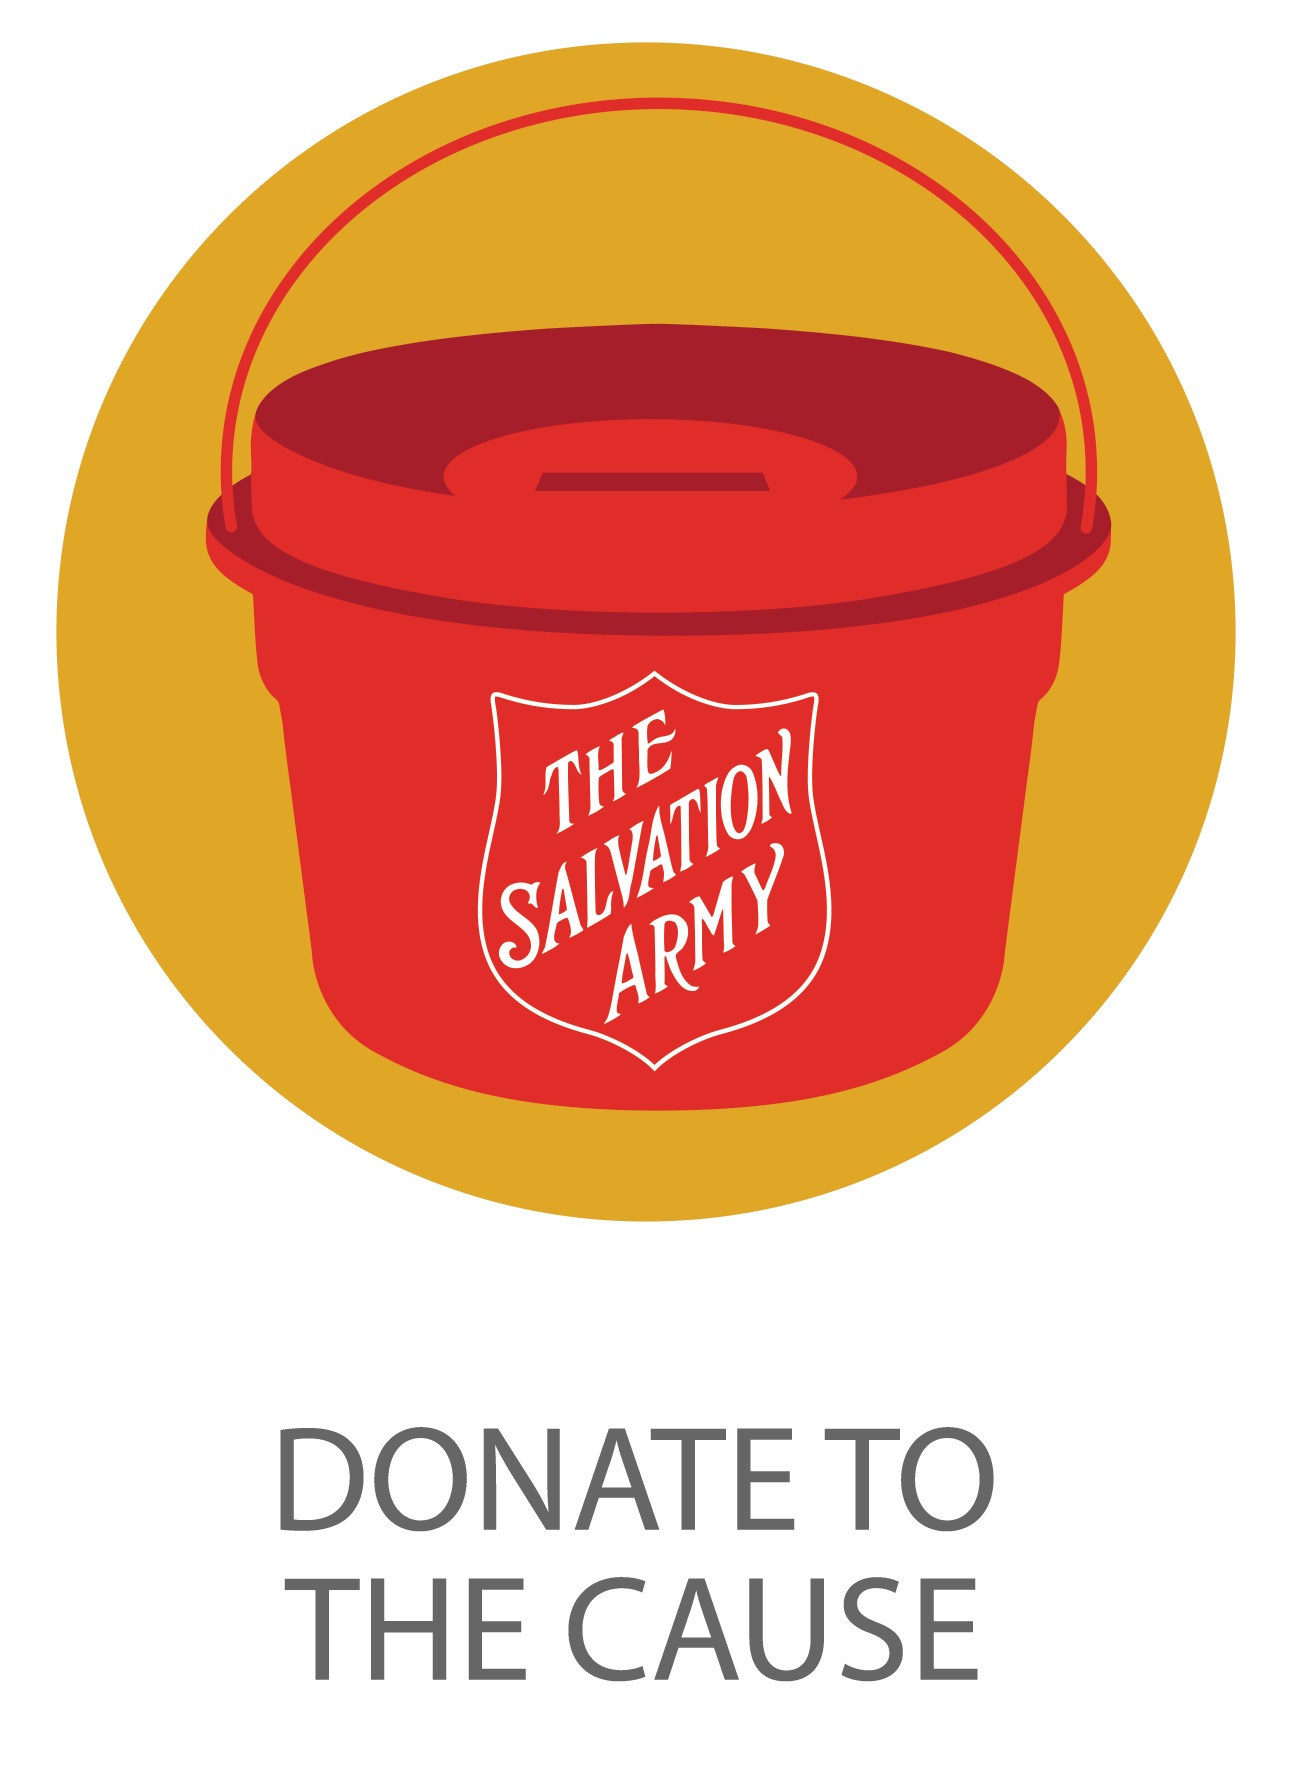 Icon of Salvation Army red kettle symbolizing donate to the cause